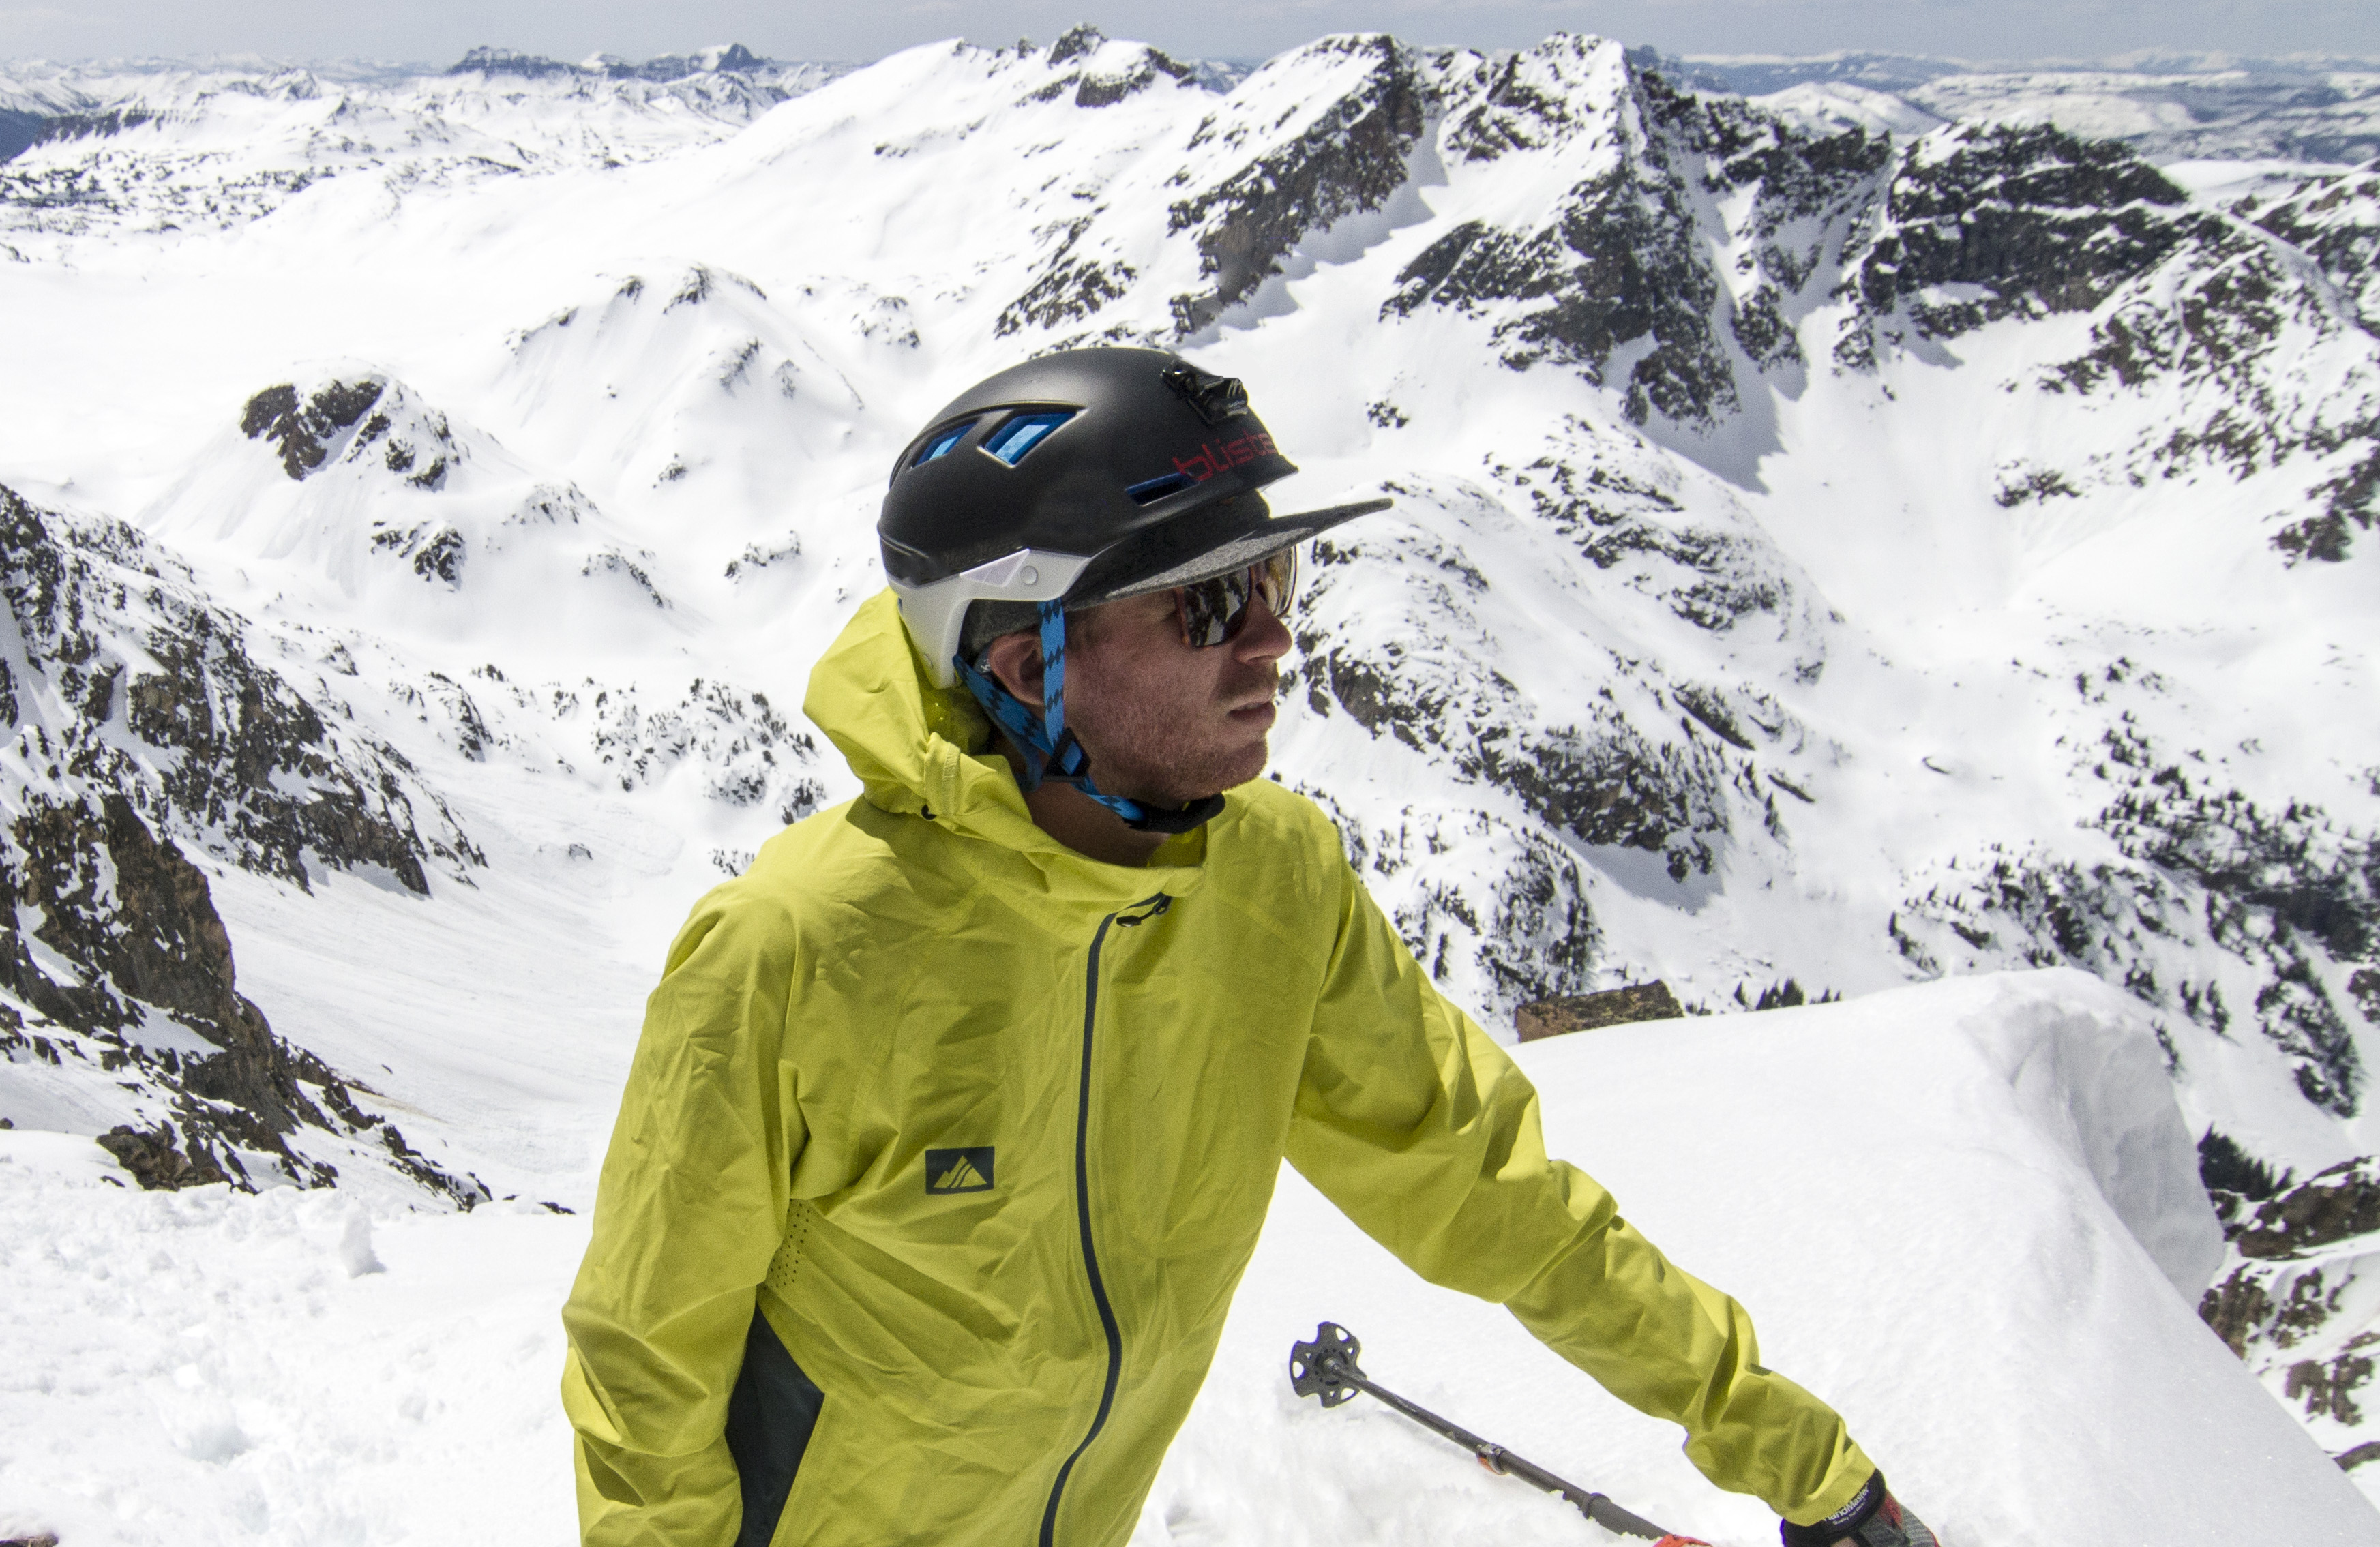 Cy Whitling reviews the Salomon MTN Lab helmet for Blister Gear Review.